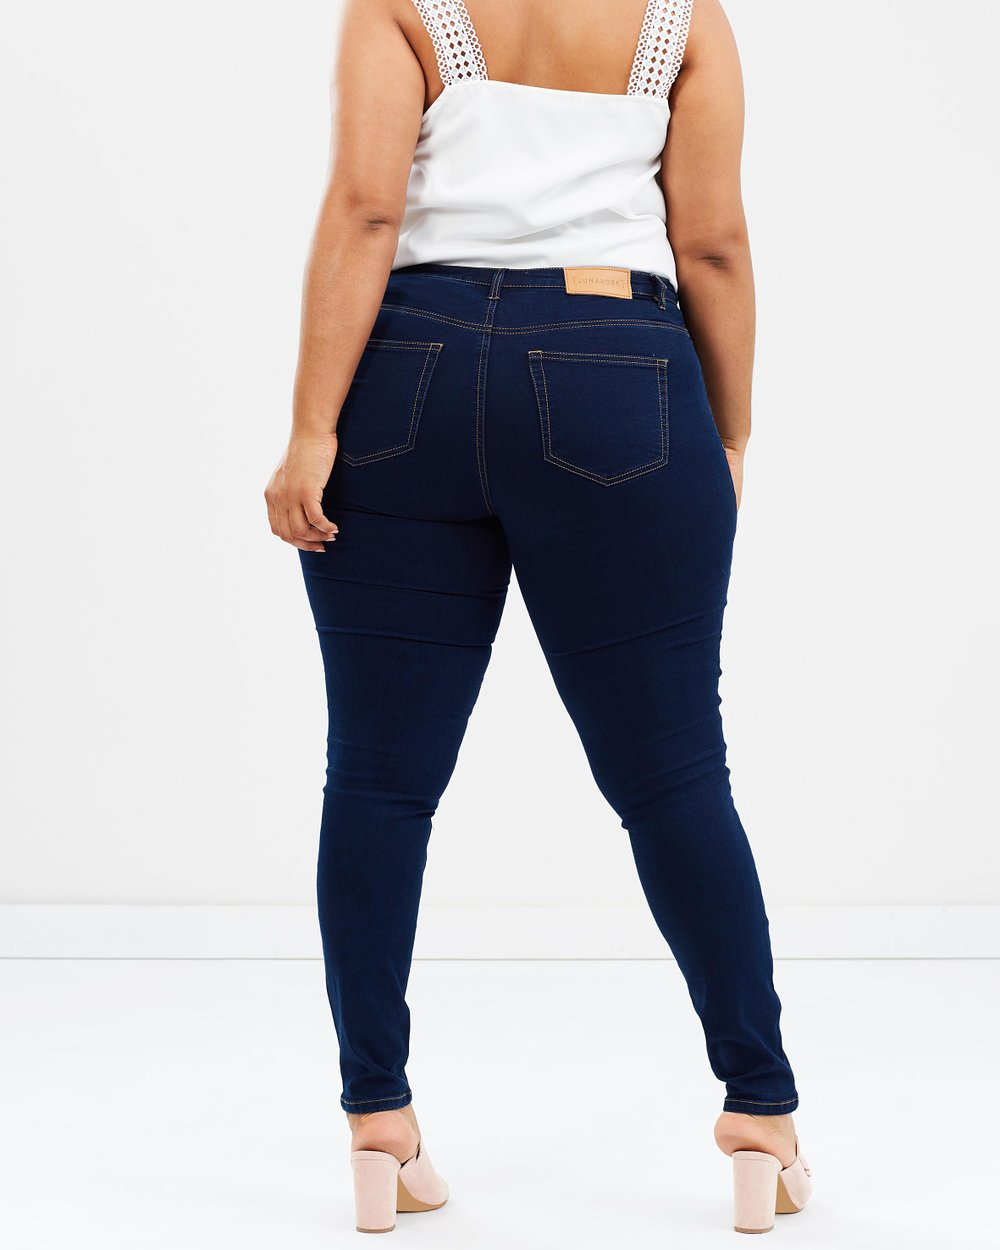 Five NW Slim Jeans by JUNAROSE Online   THE ICONIC   Australia 5e9652f716